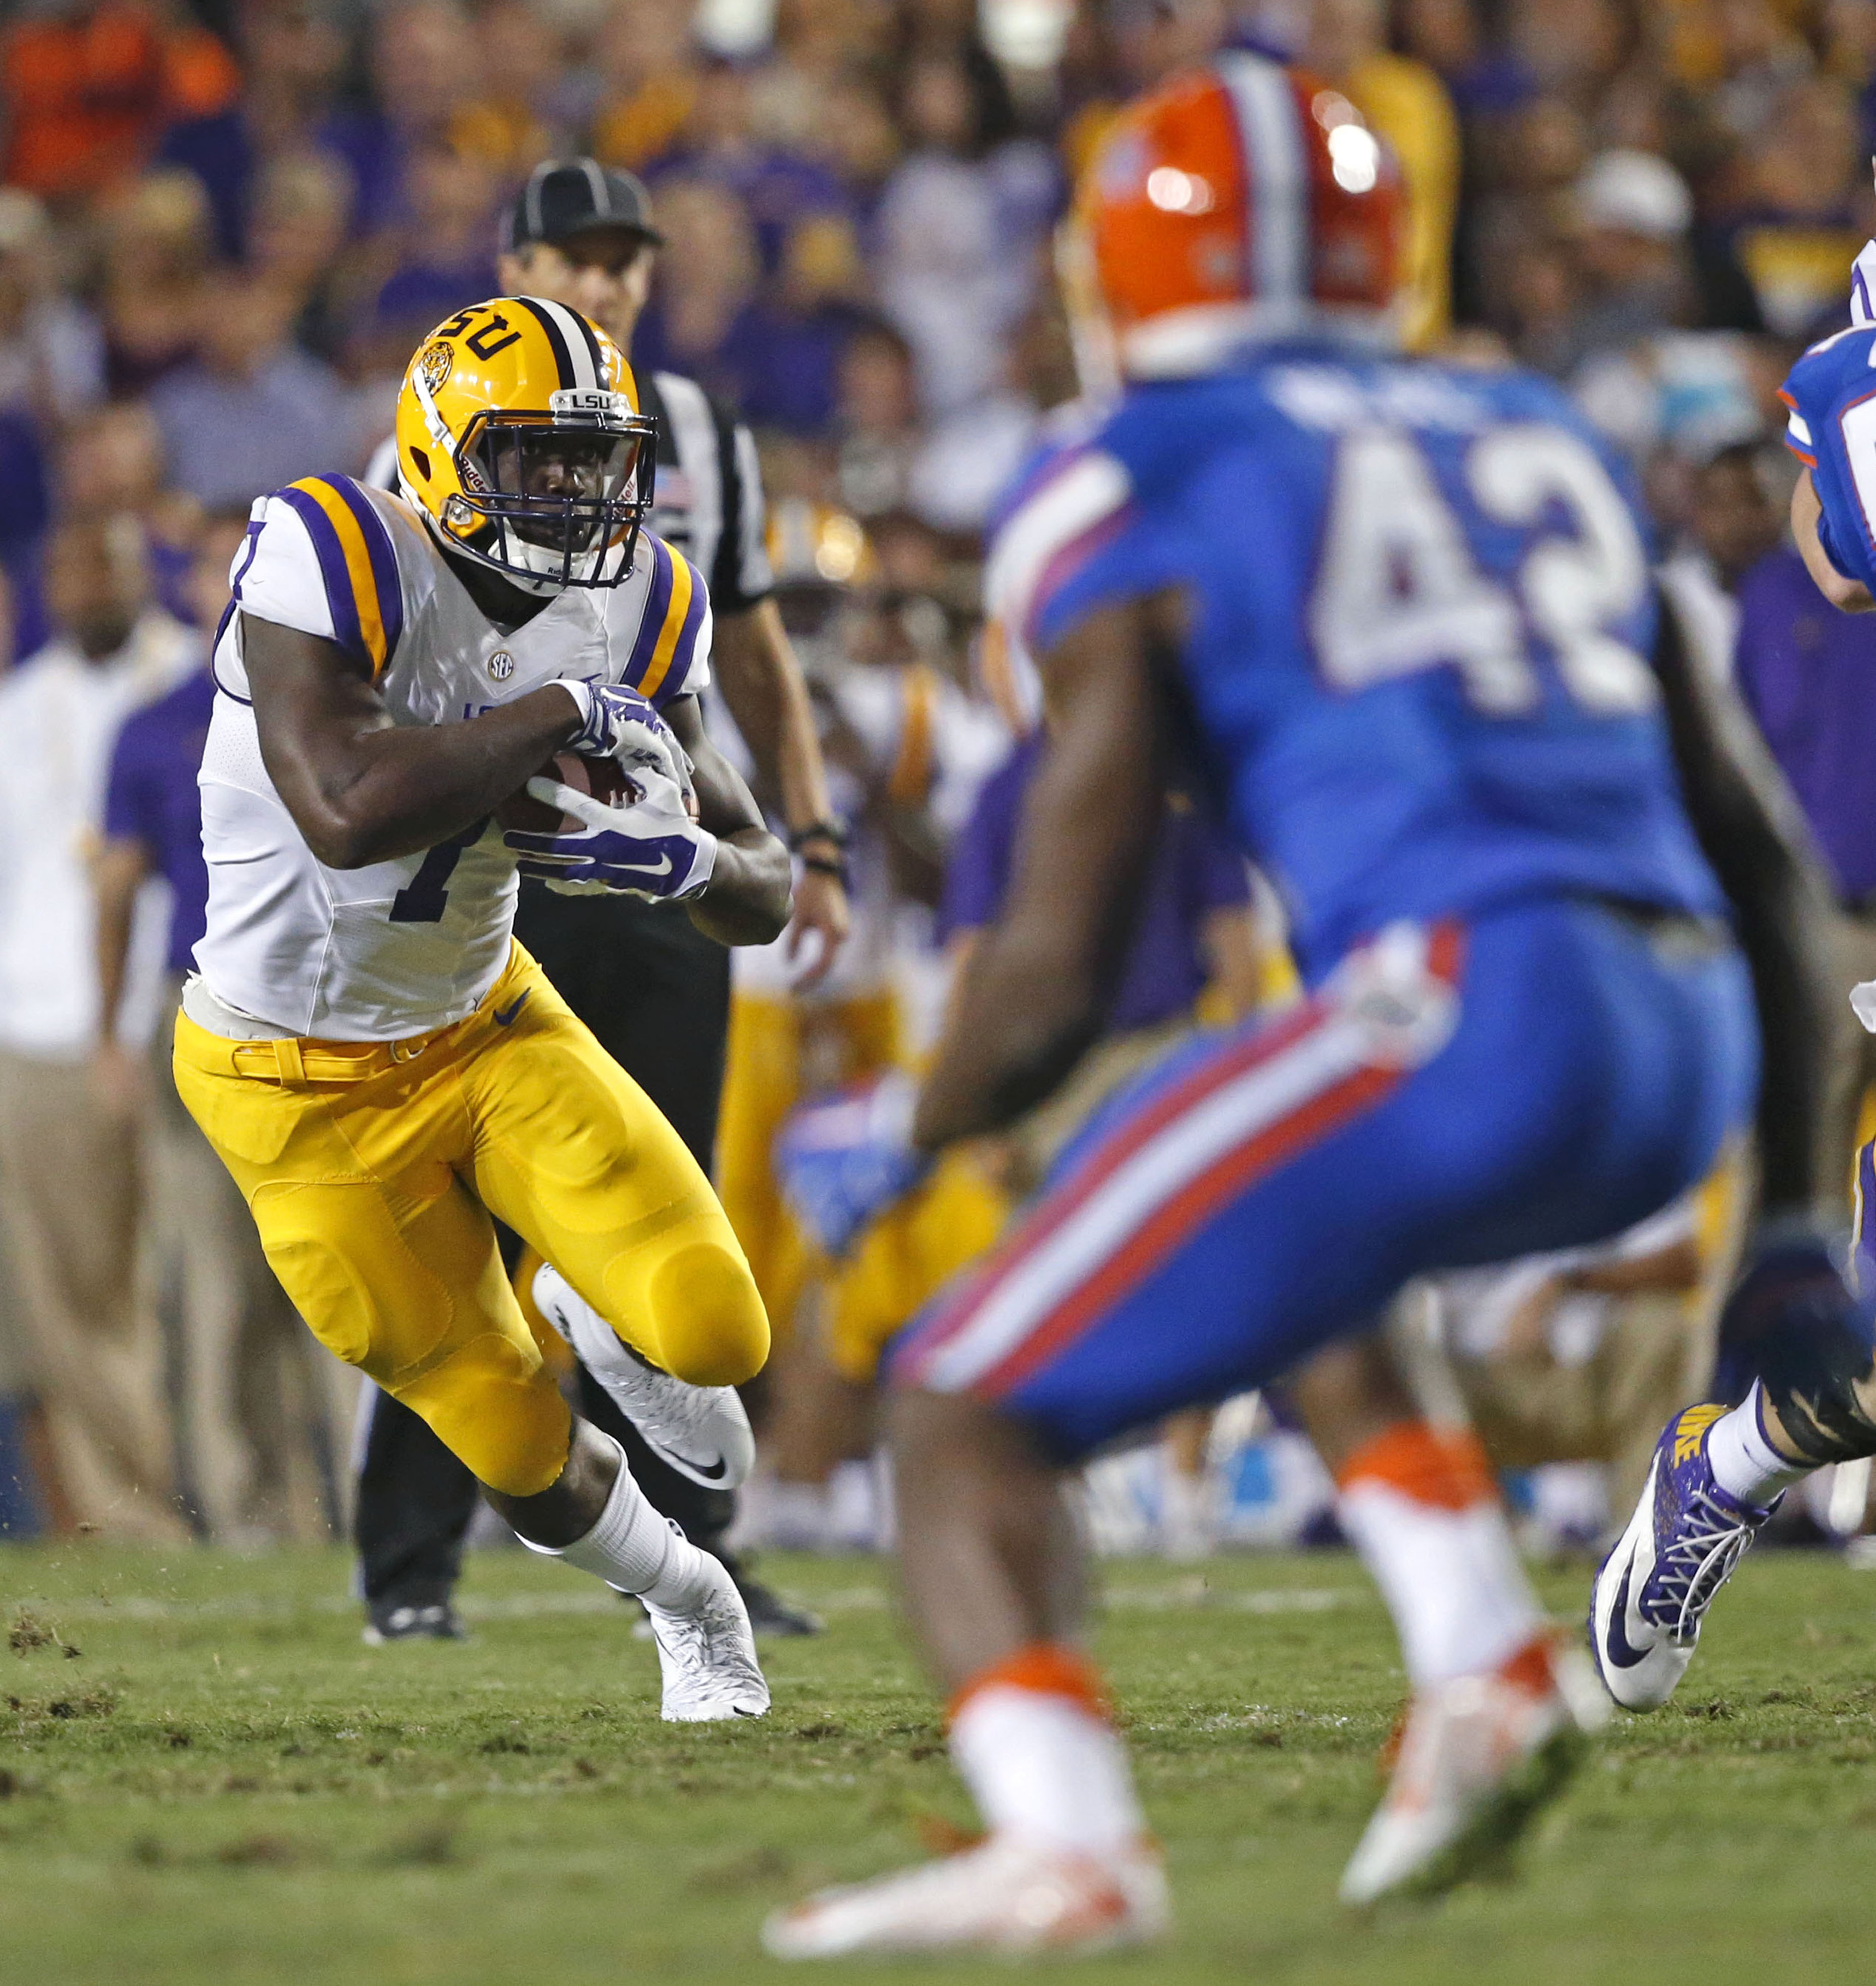 LSU running back Leonard Fournette (7) carries in the first half of an NCAA college football game against Florida in Baton Rouge, La., Saturday, Oct. 17, 2015. (AP Photo/Gerald Herbert)